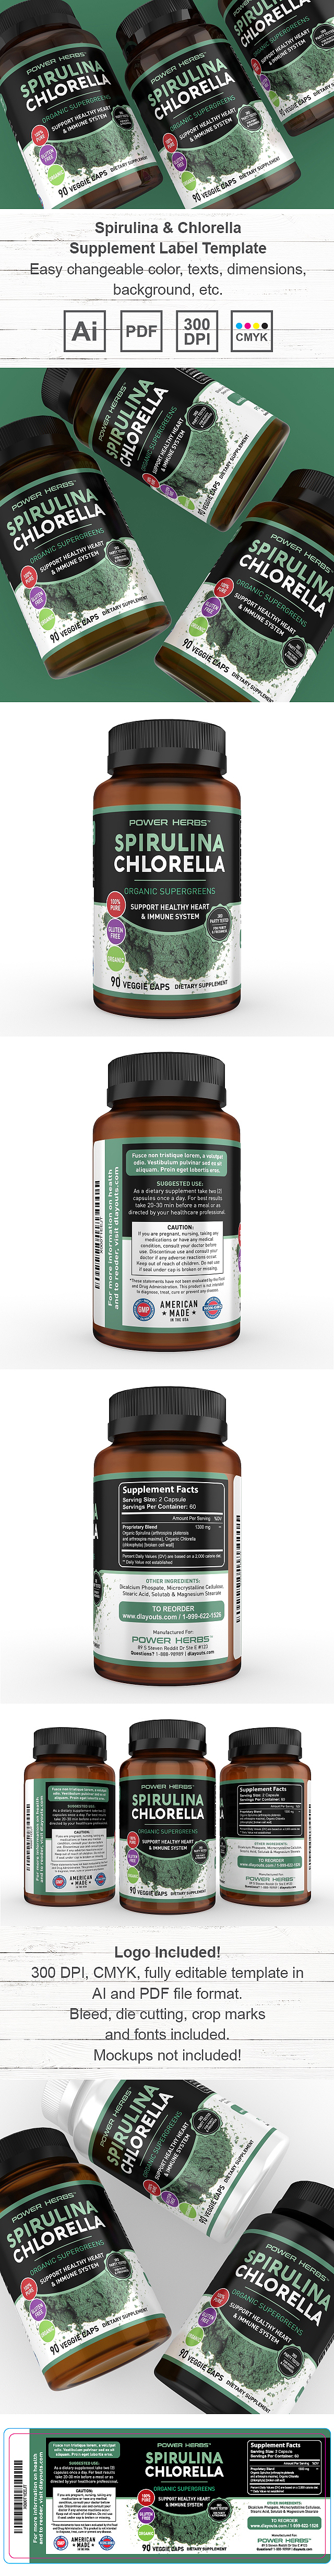 Spirulina and Chlorella Supplement Label Template